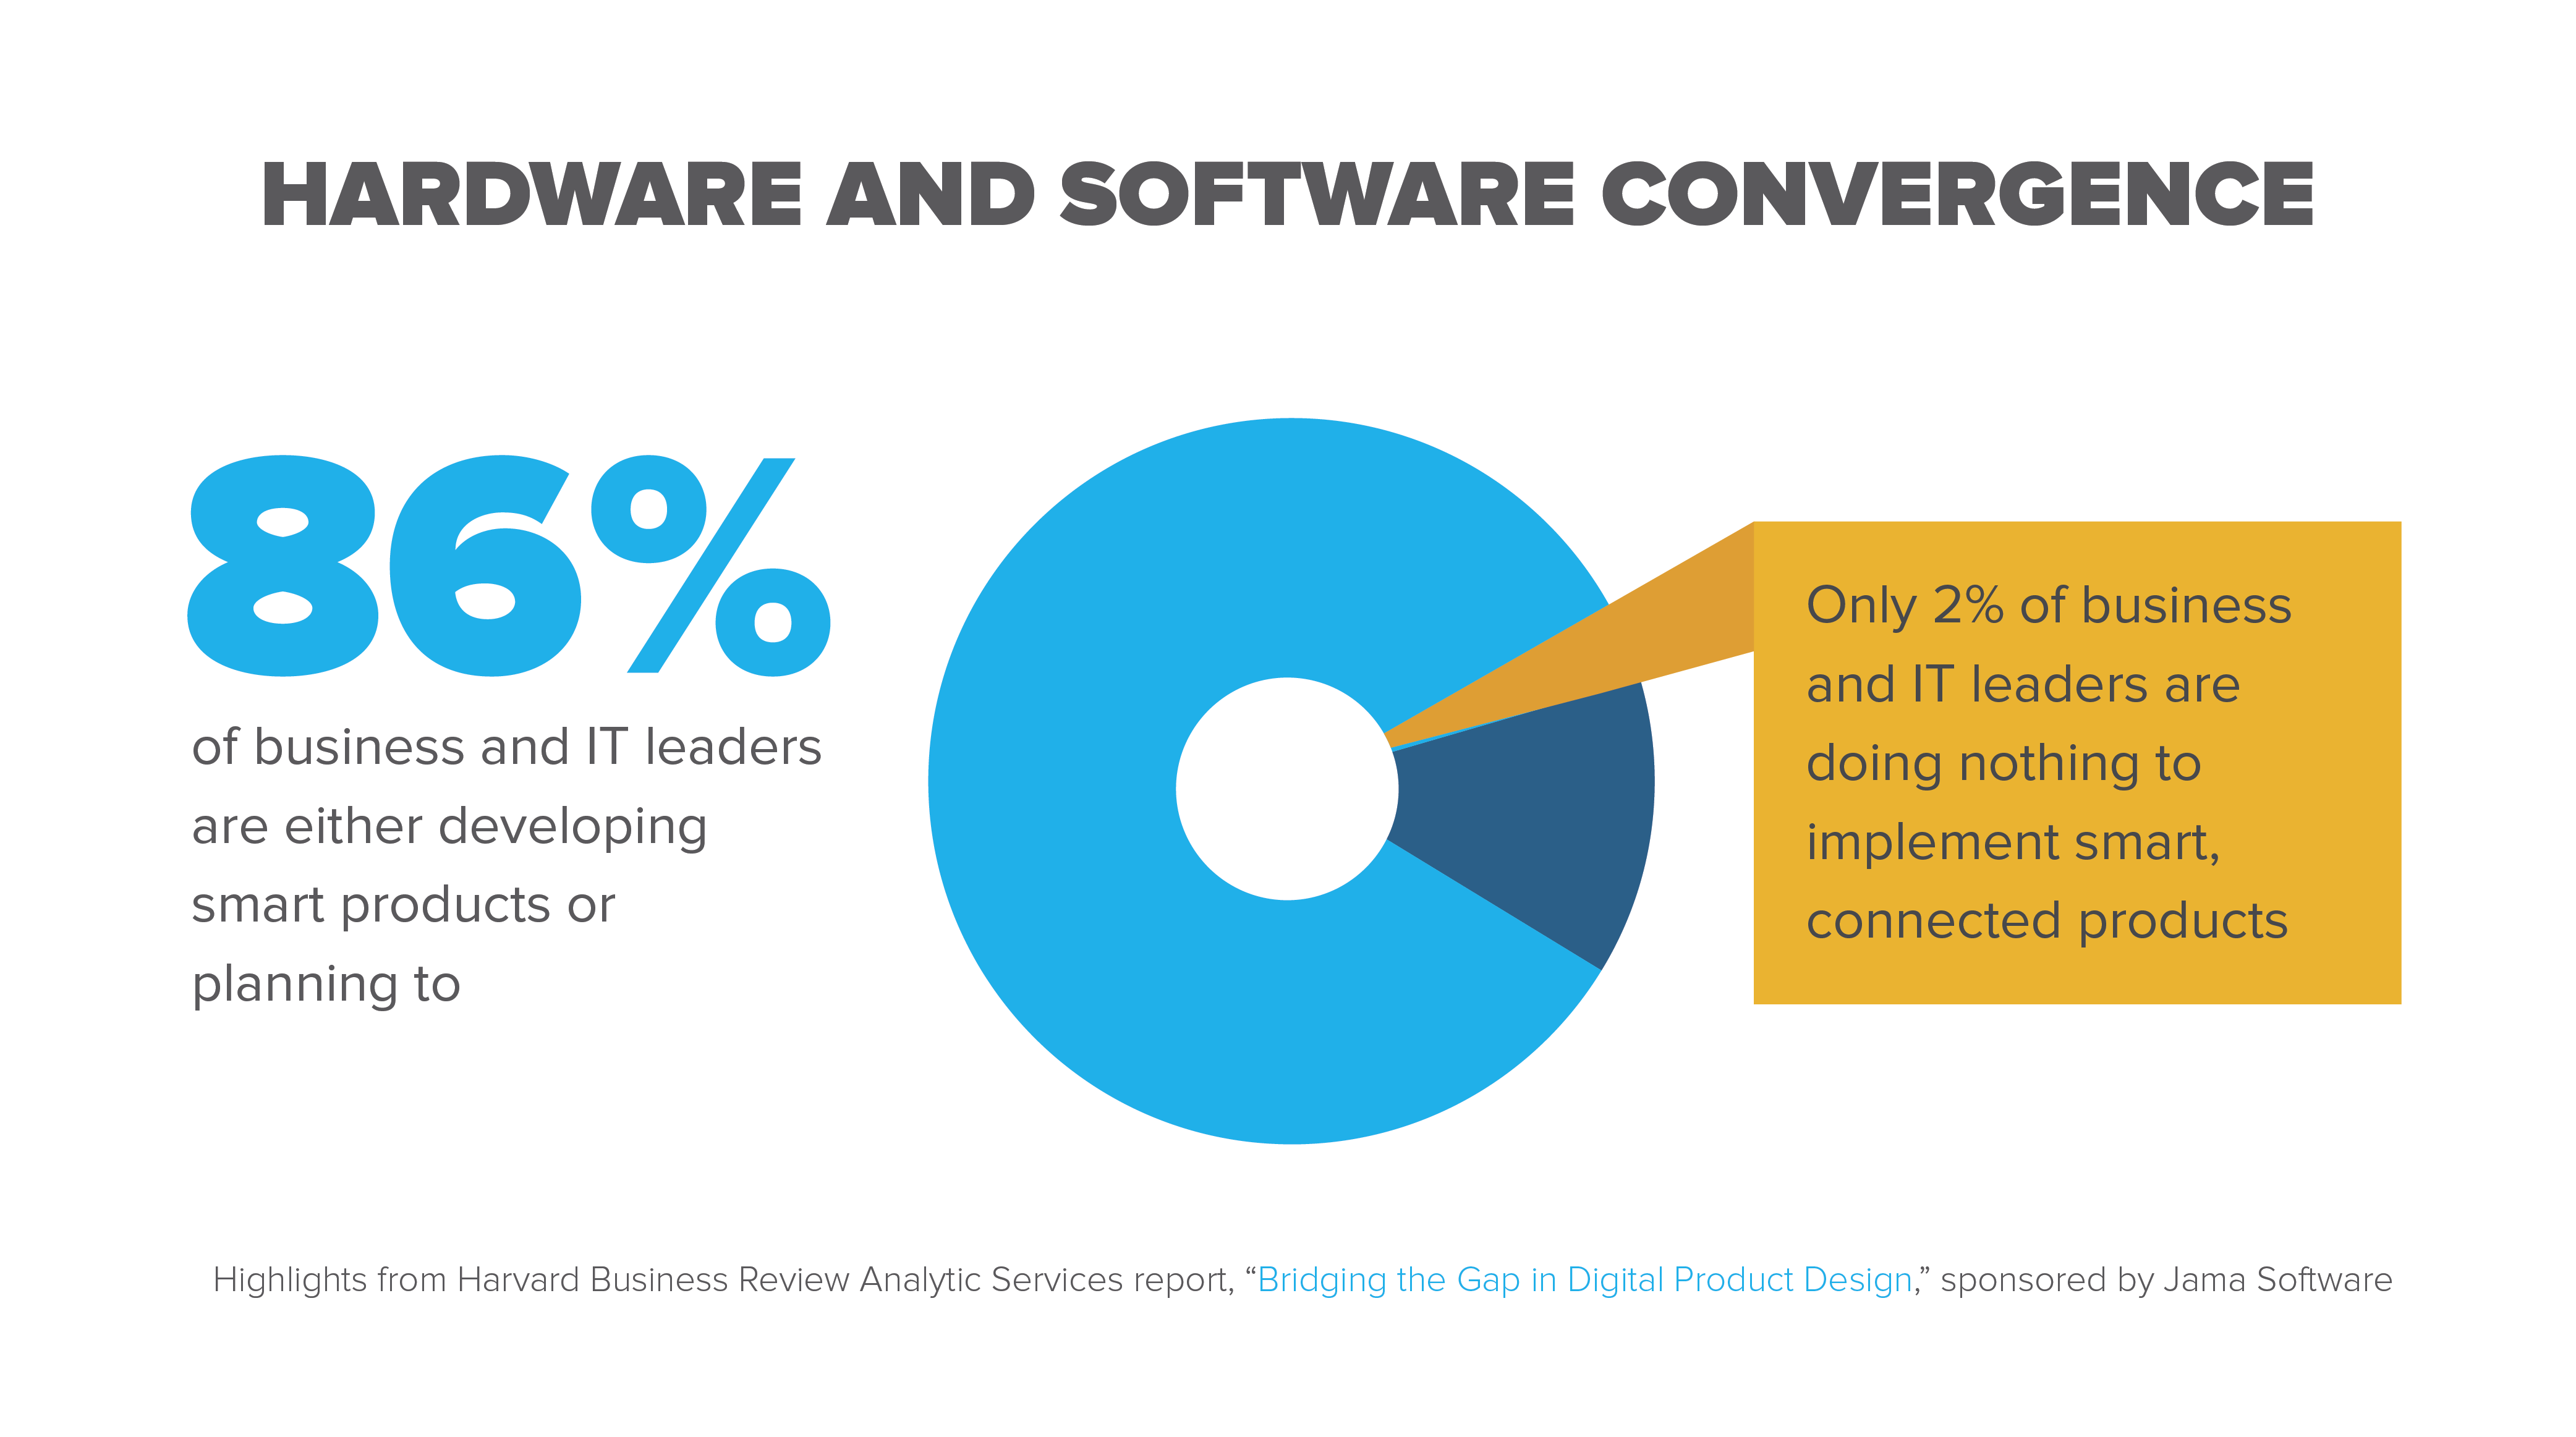 86% of business and IT leaders are developing smart products or planning to